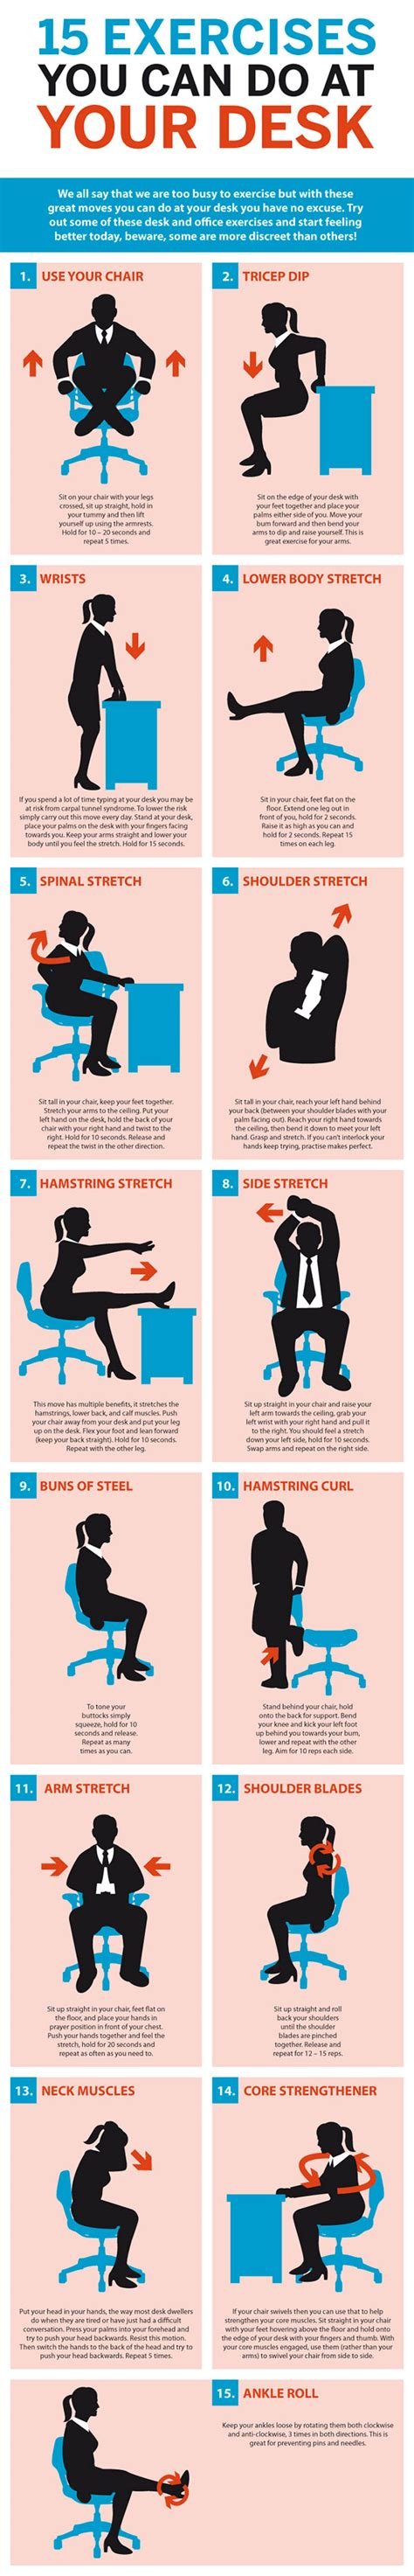 exercises to do at your desk workouts inspiration office exercise desk workout exercise